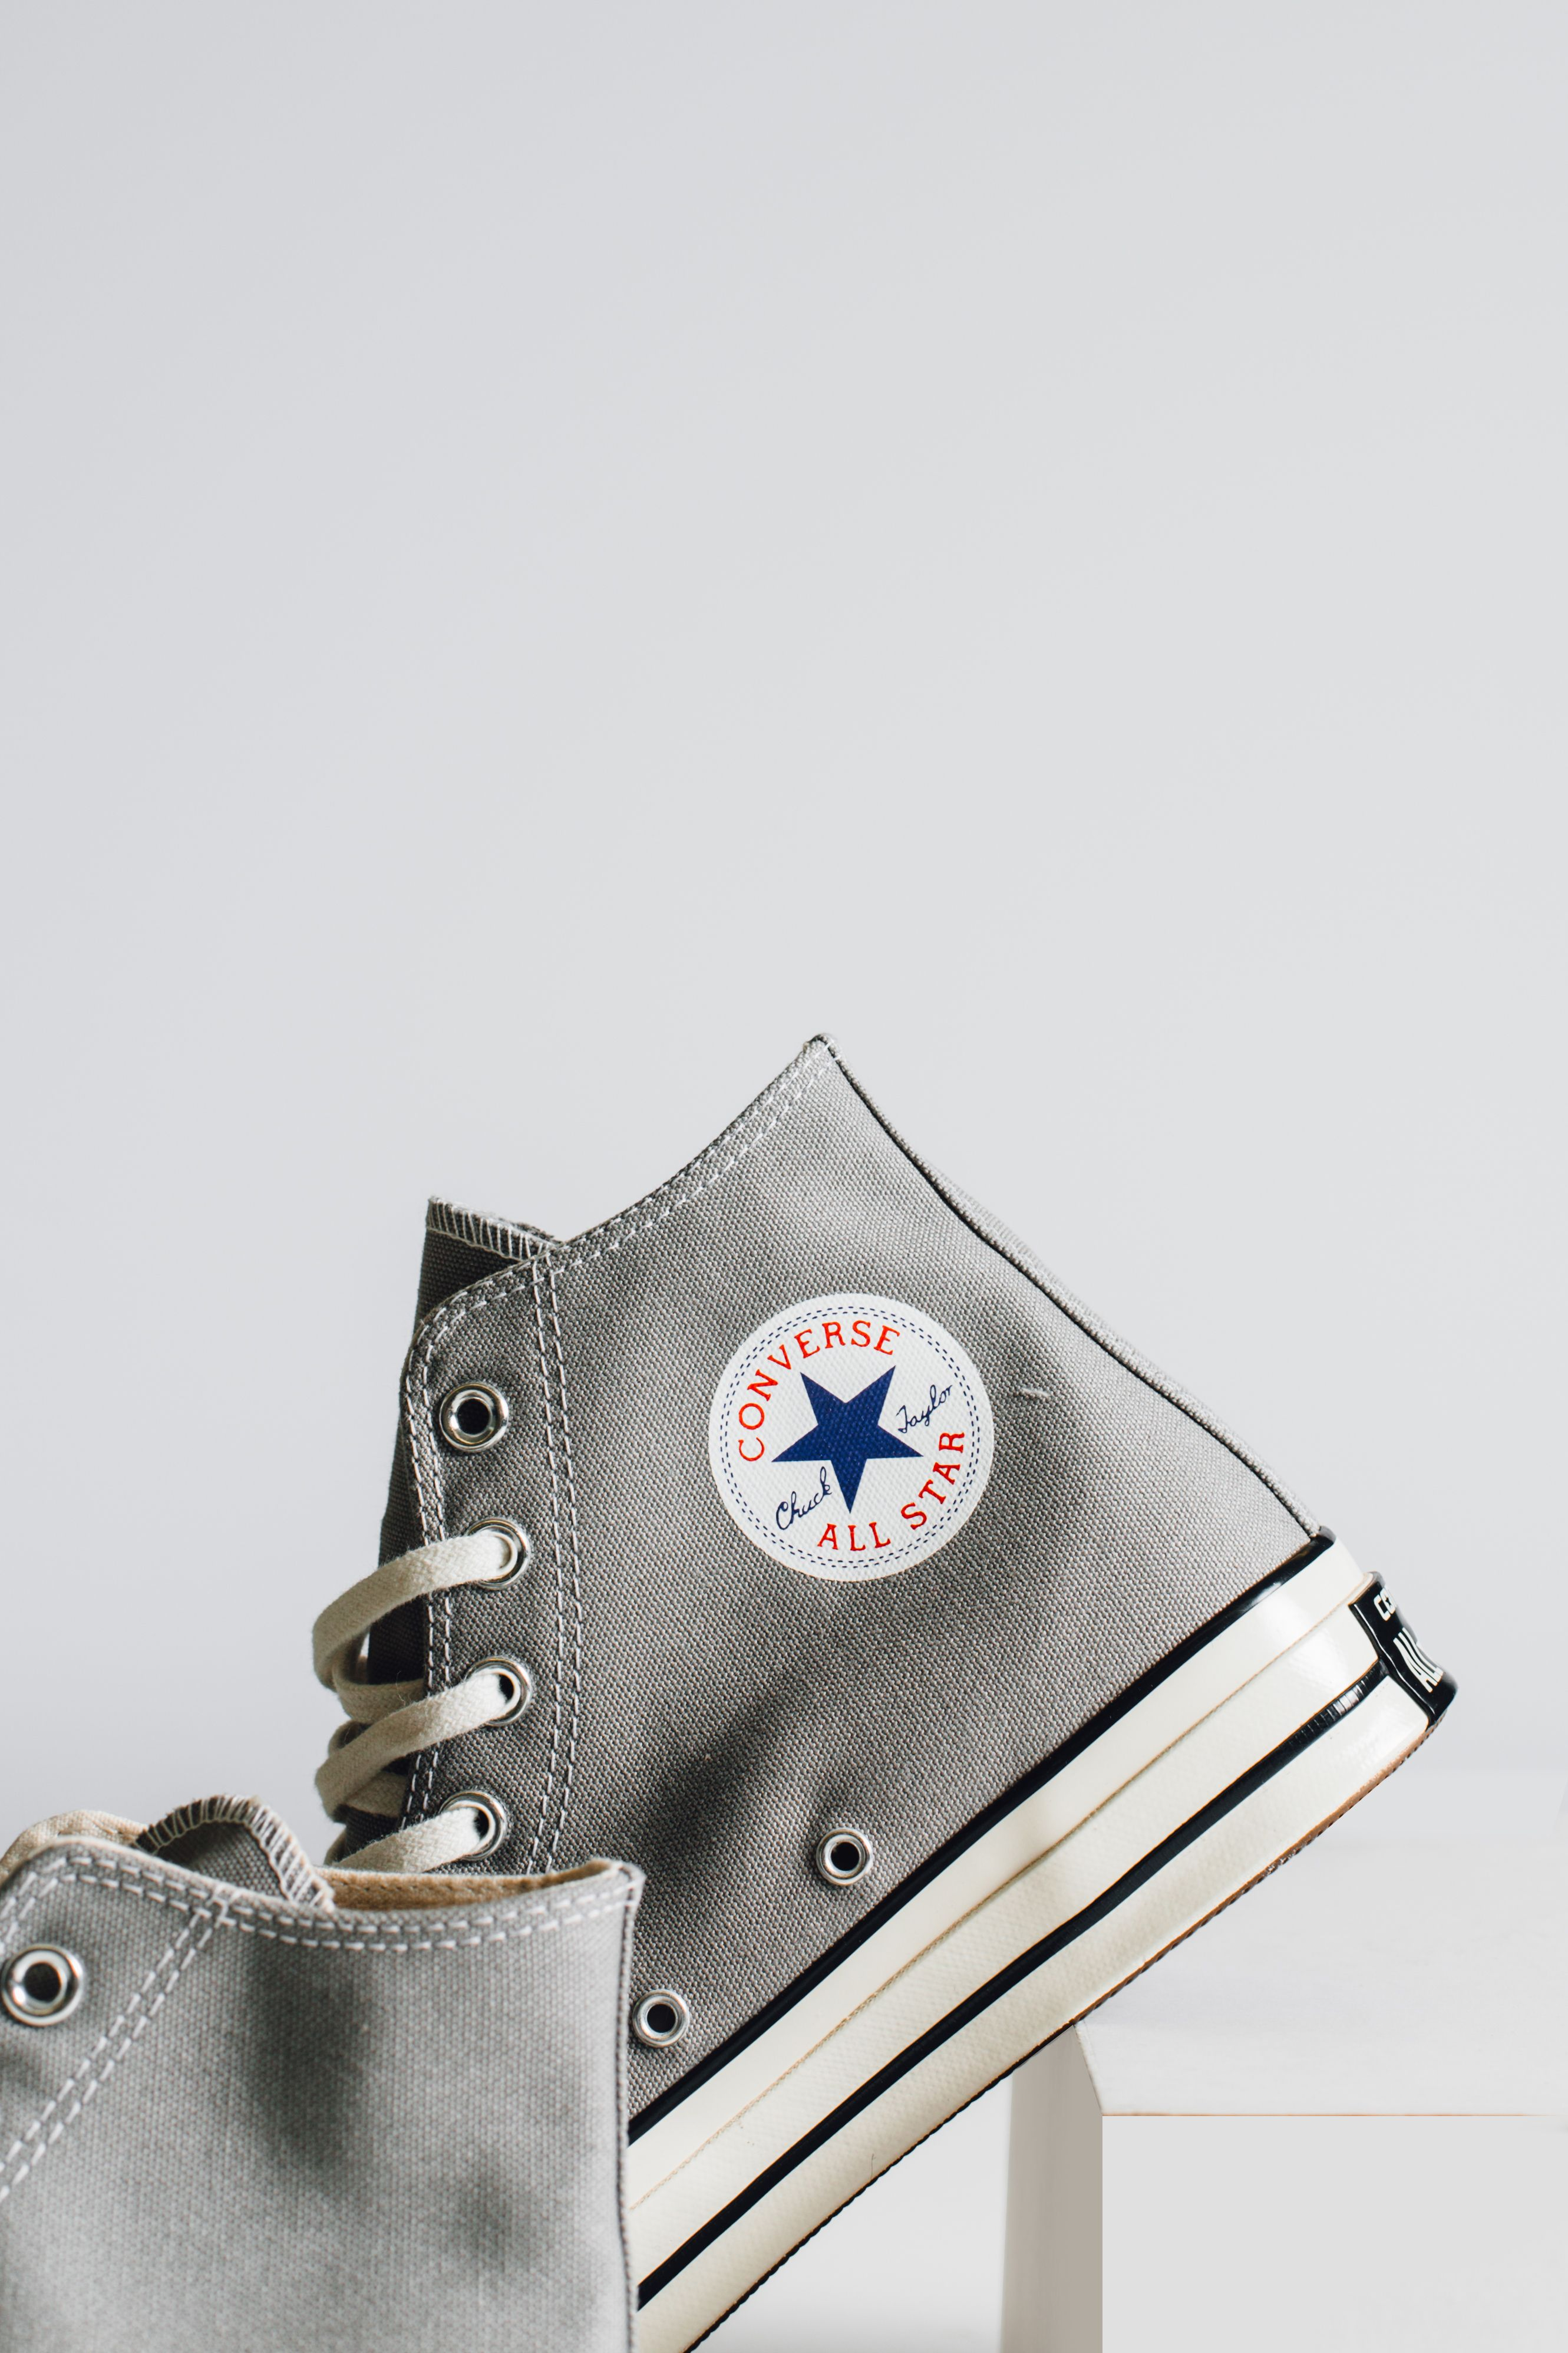 finest selection 5bc7f 6c314 Converse Chuck Taylor  70s In Wild Dove  Fashion  Streetwear  Style  Urban   Lookbook  Photography  Footwear  Sneakers  Kicks  Shoes  Converse  Chucks    ...